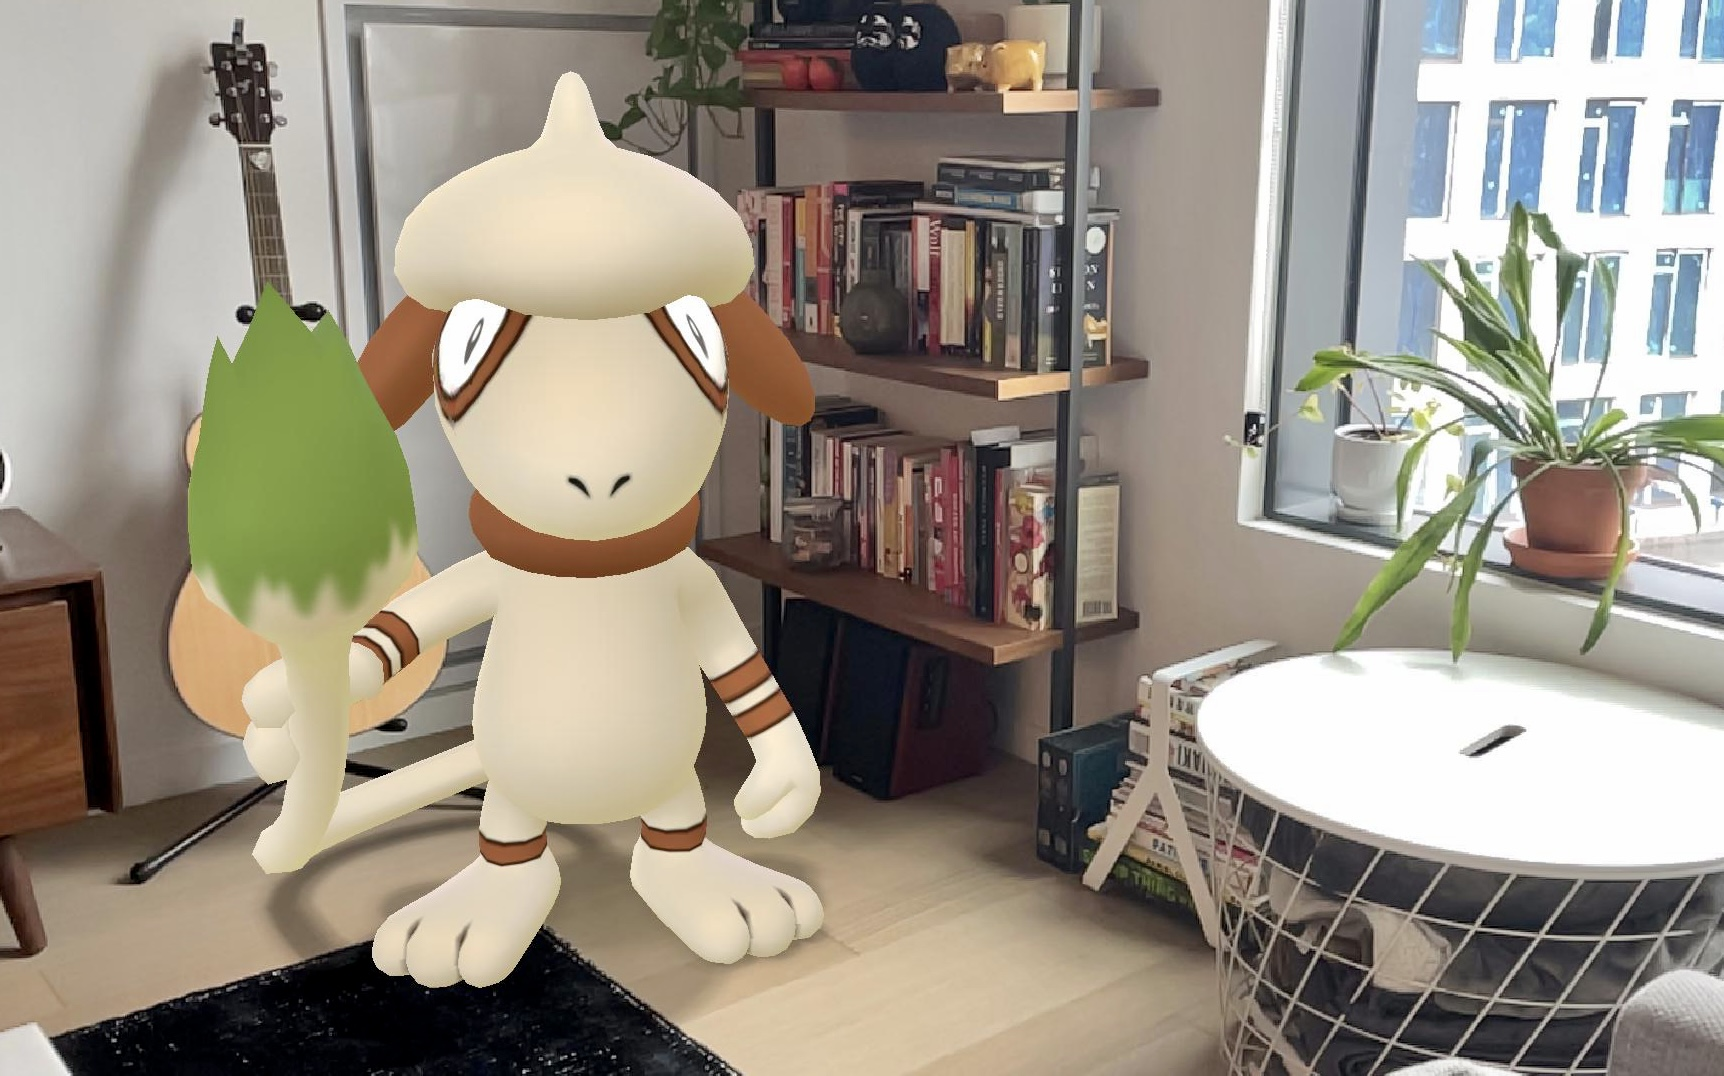 Smeargle appears in an apartment in a snap from Pokemon Go